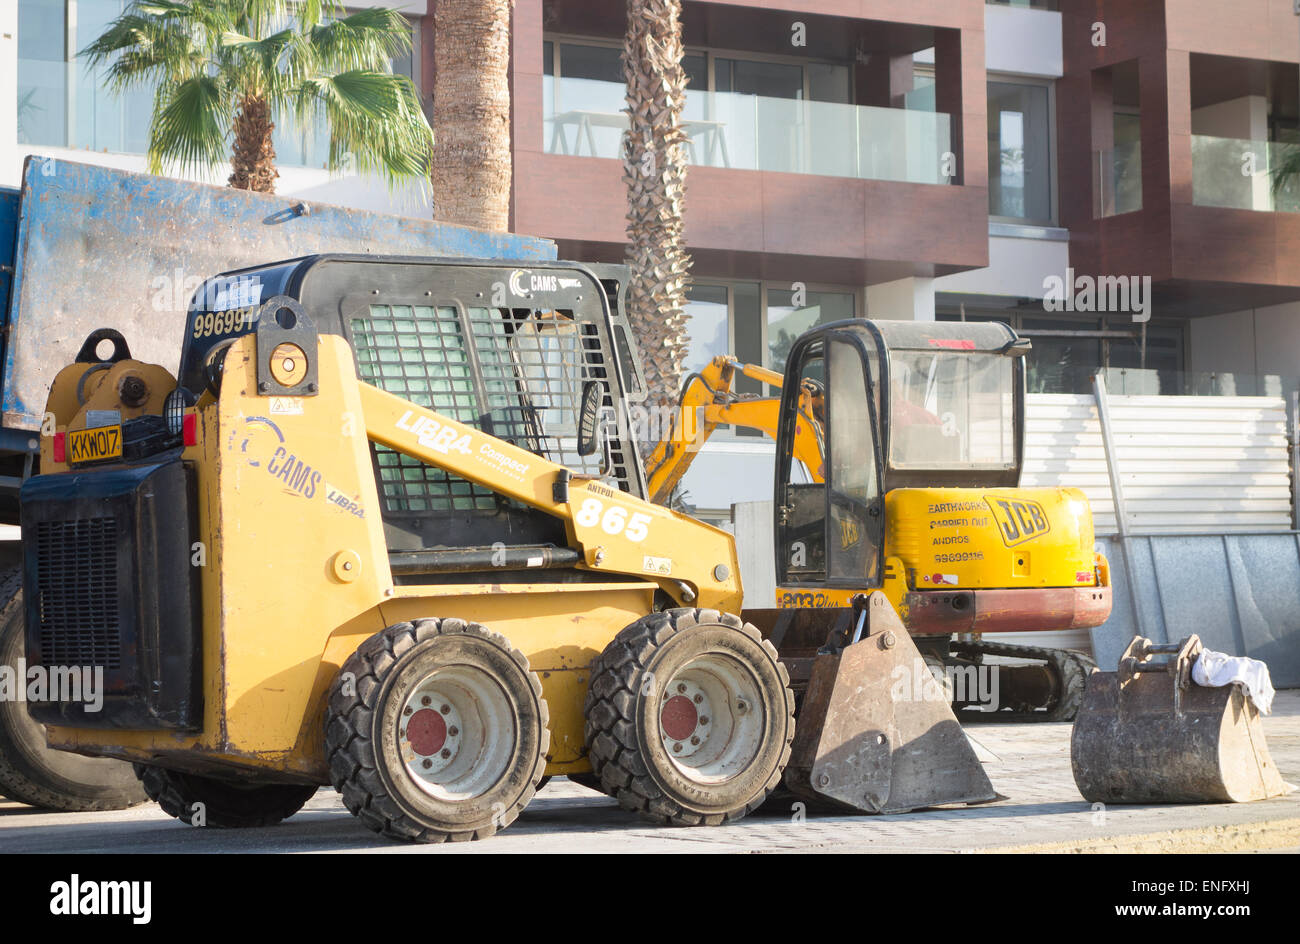 Construction works. Two construction machineries working near new building on the Paphos street. - Stock Image